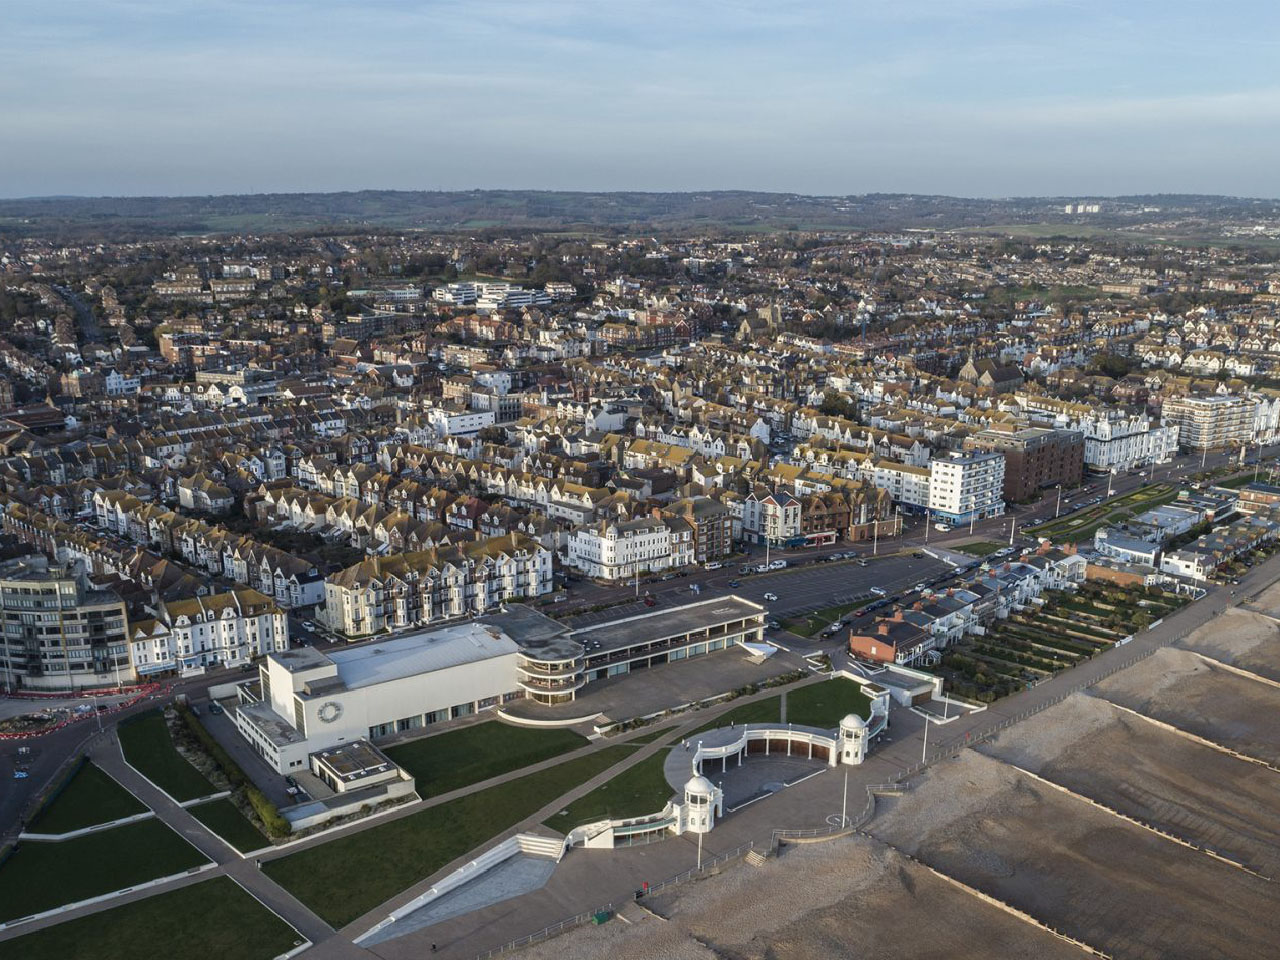 Bexhill-on-Sea & Cooden